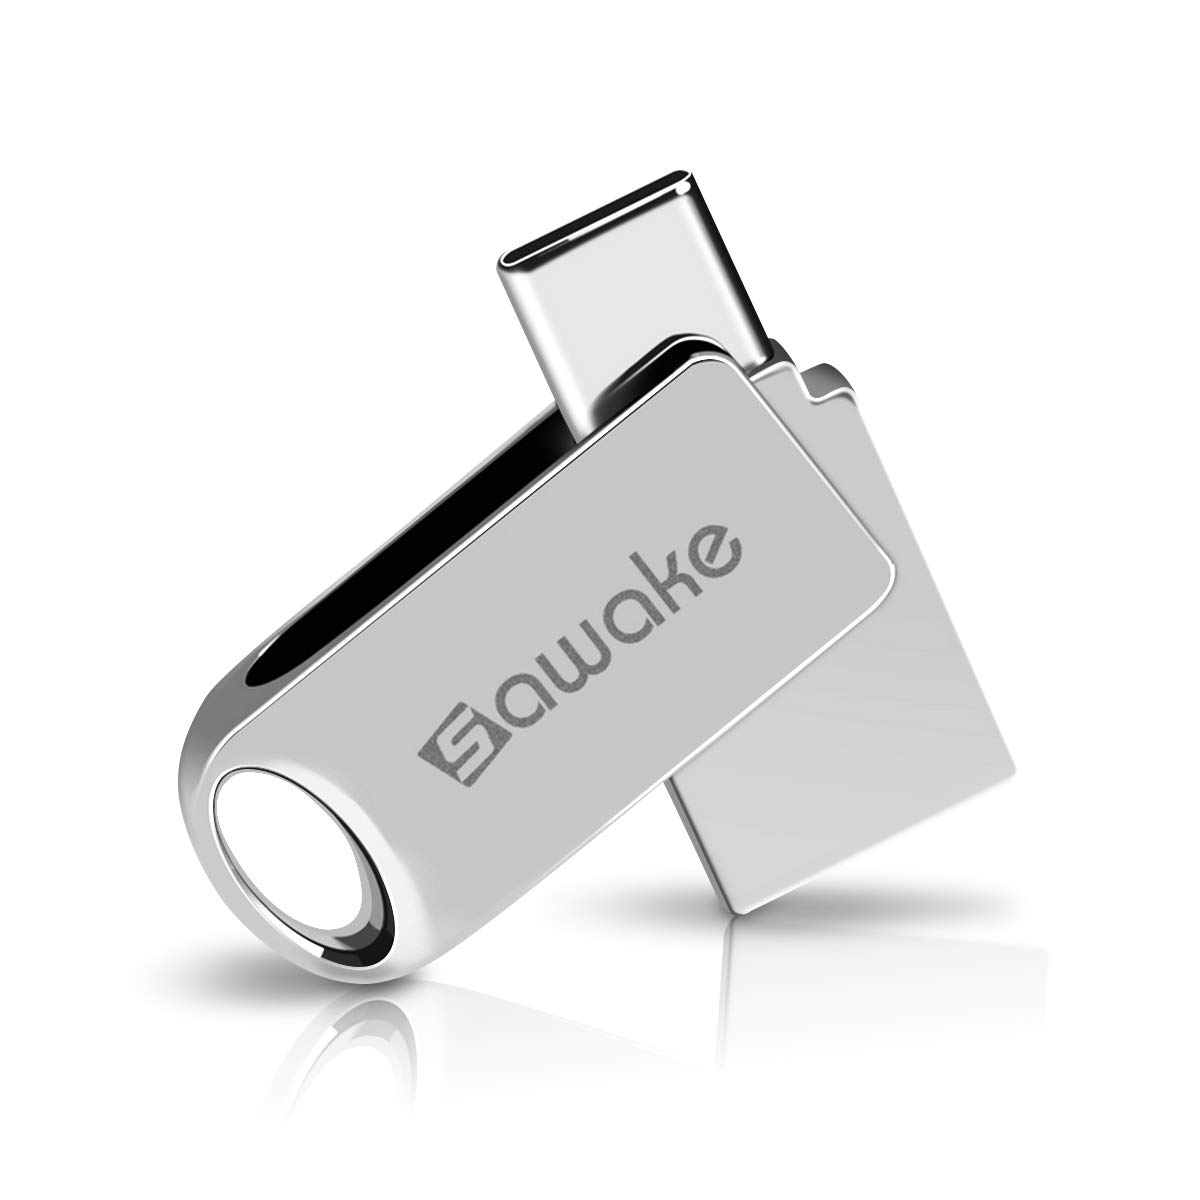 11 Best USB-C Thumb Drives (Reviewed August 2019) 5